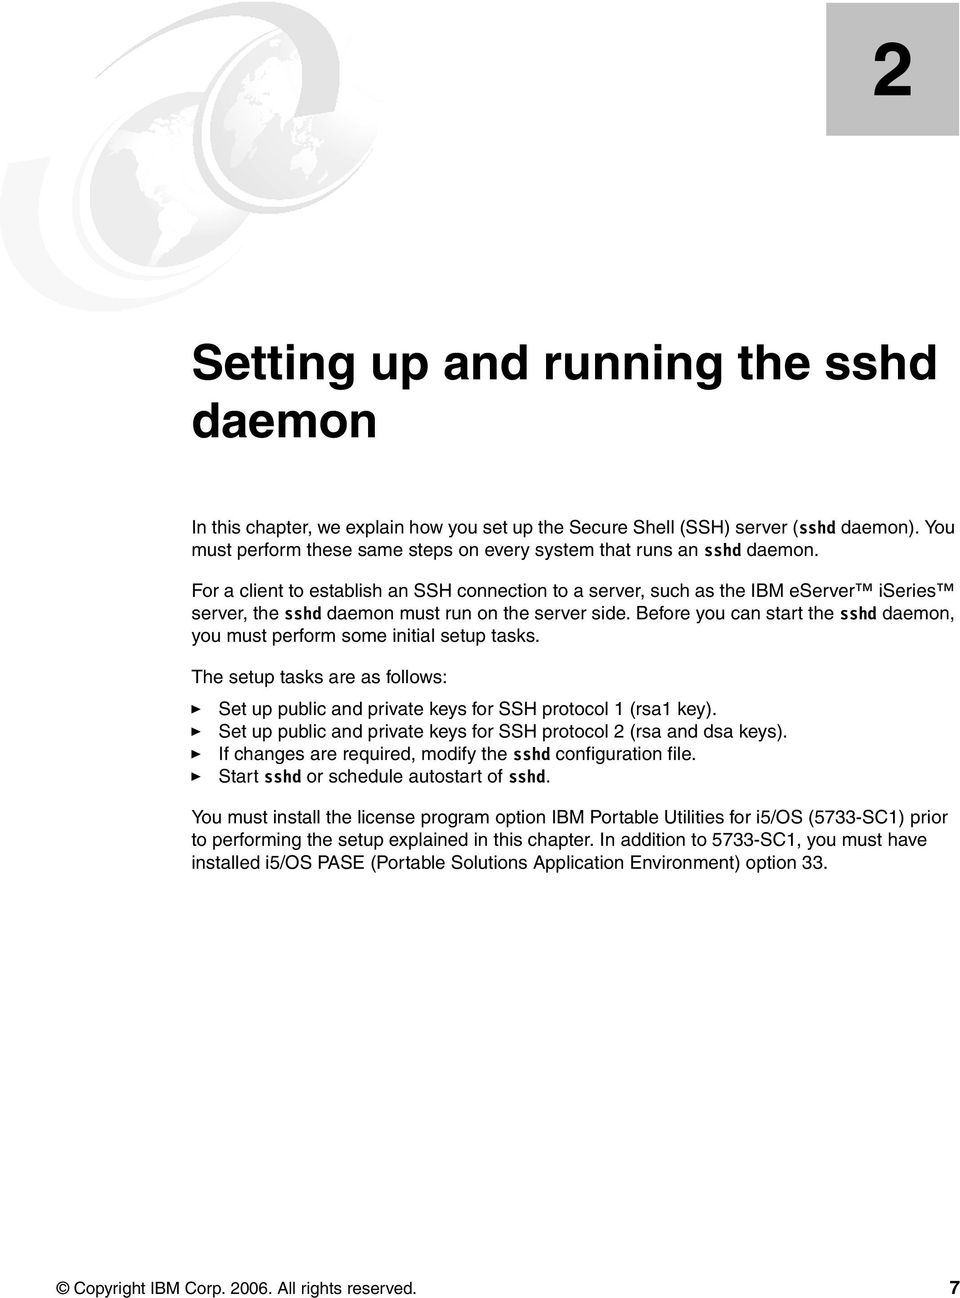 Redpaper  Securing Communications with OpenSSH on IBM i5/os